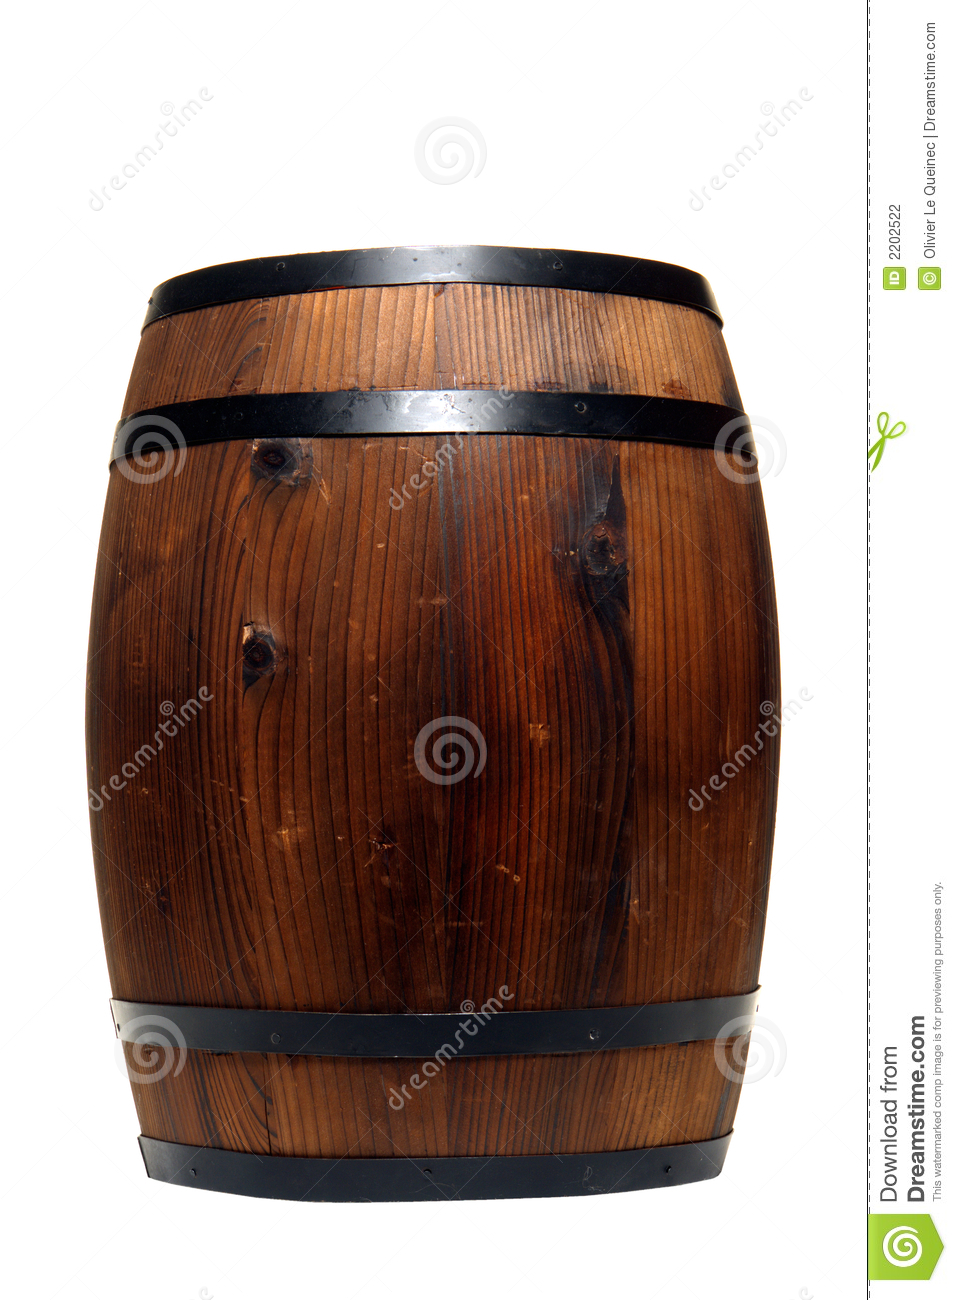 Old Whisky Barrel Or Wine Cask Wood Container Stock Photo